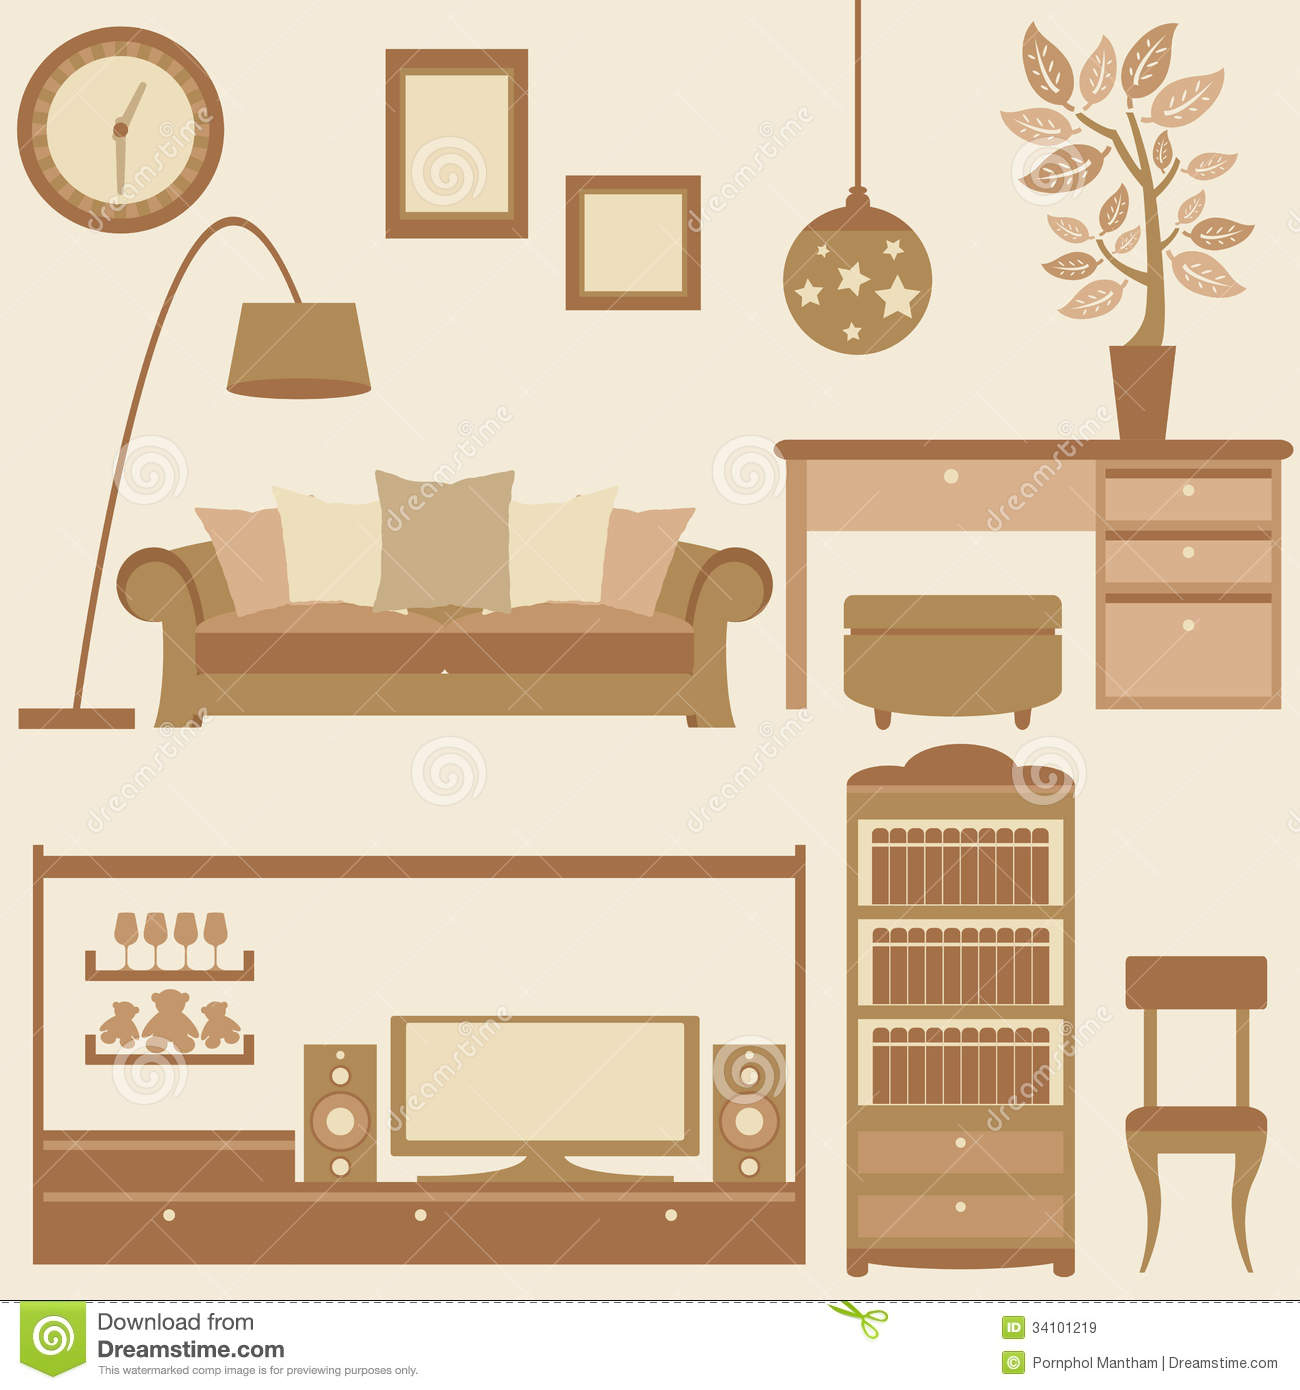 For Furniture In Living Room Vector Set Of Furniture In Living Room Royalty Free Stock Images